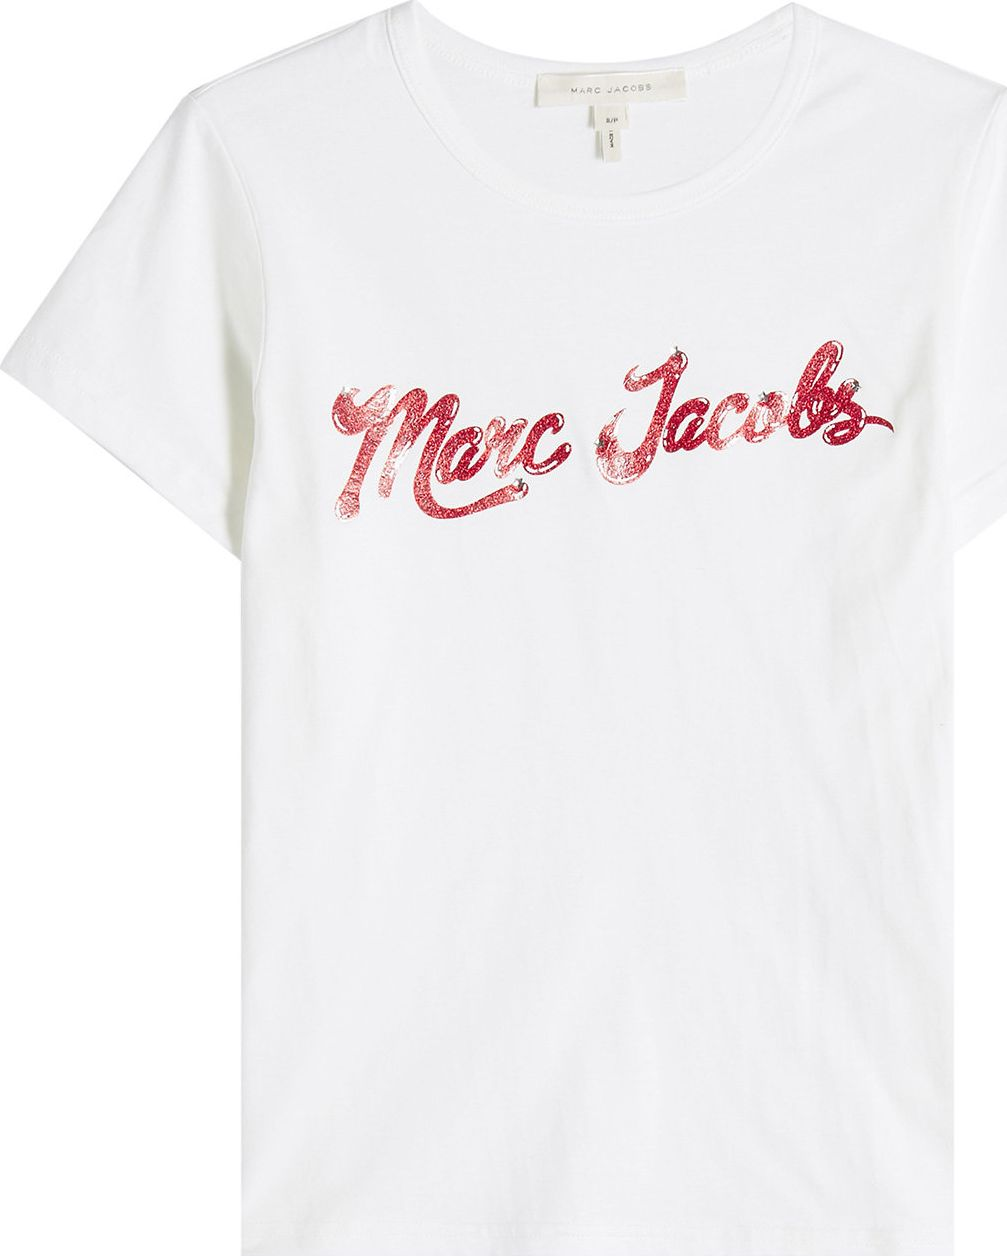 MARC JACOBS - Printed Cotton T-Shirt